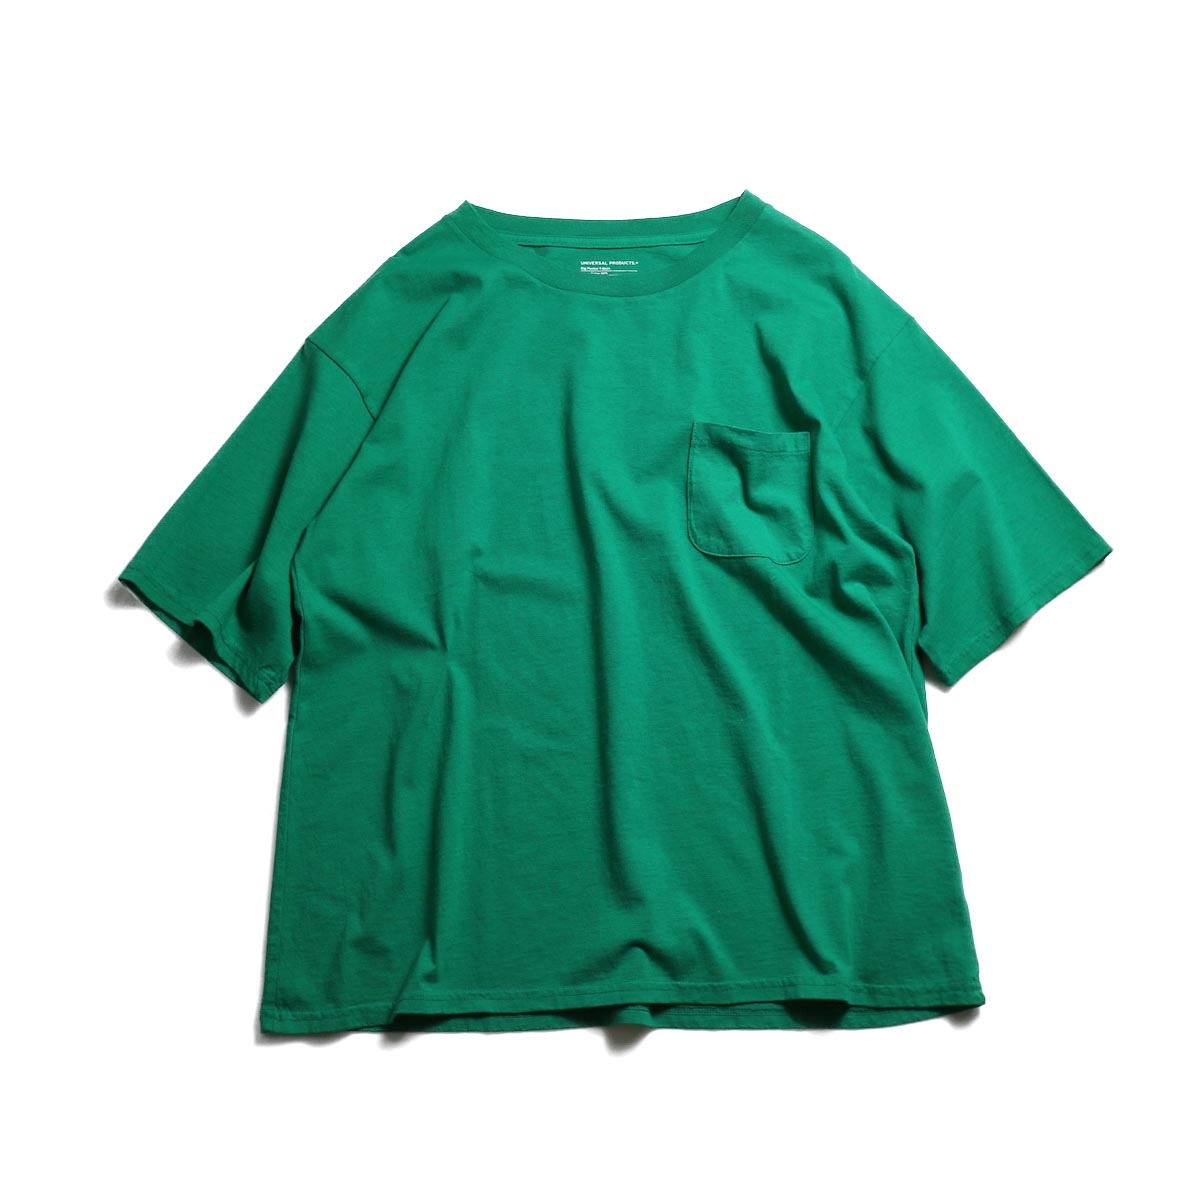 UNIVERSAL PRODUCTS / Heavy Weight S/S T-Shirt -Green